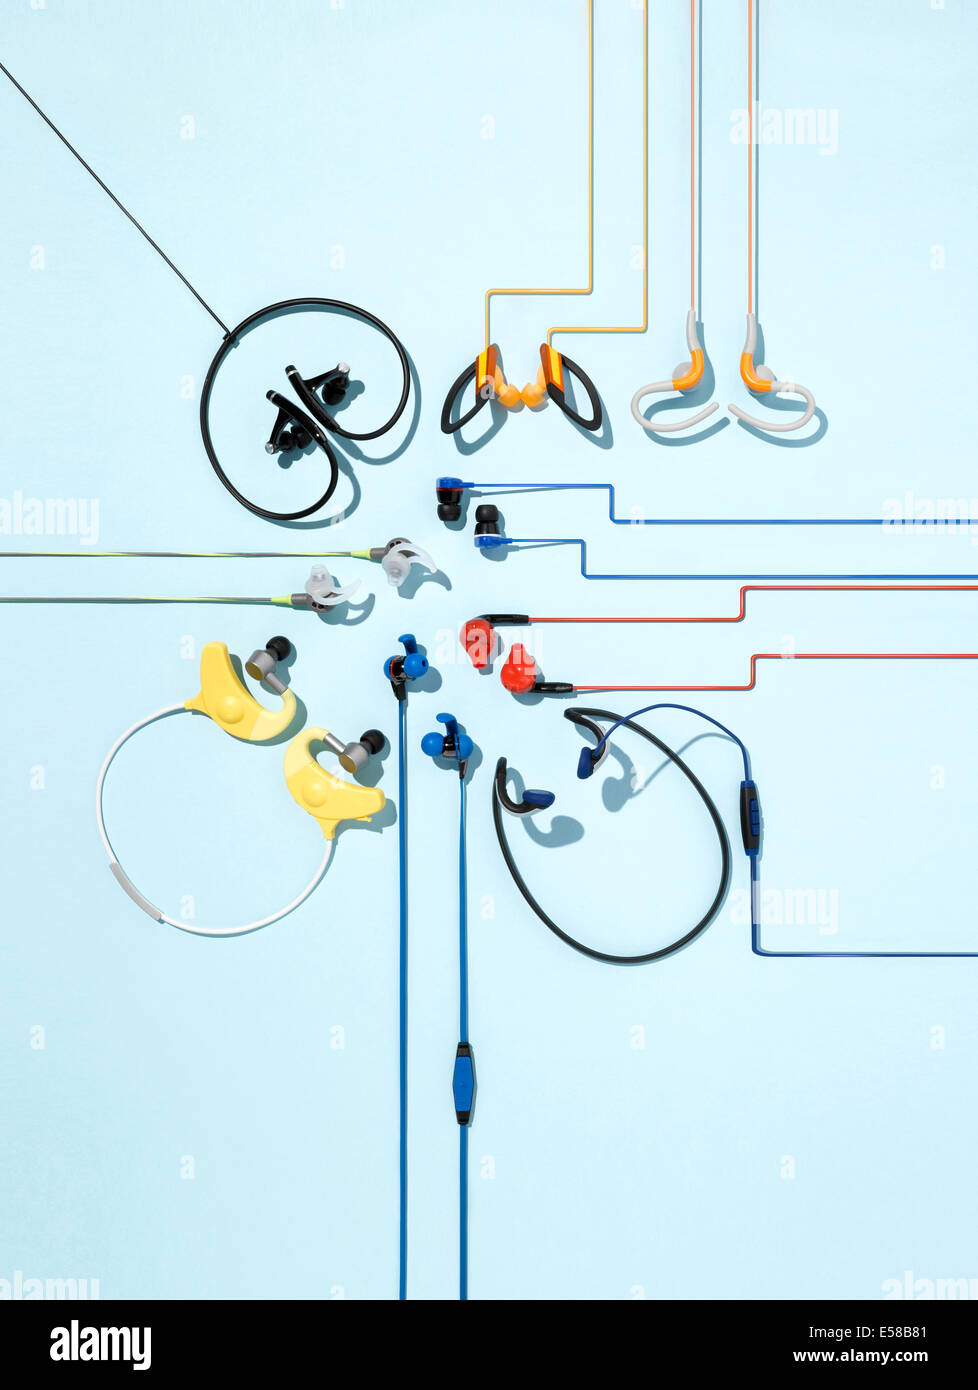 hight resolution of a creative still life of a variety of different styles of headphones